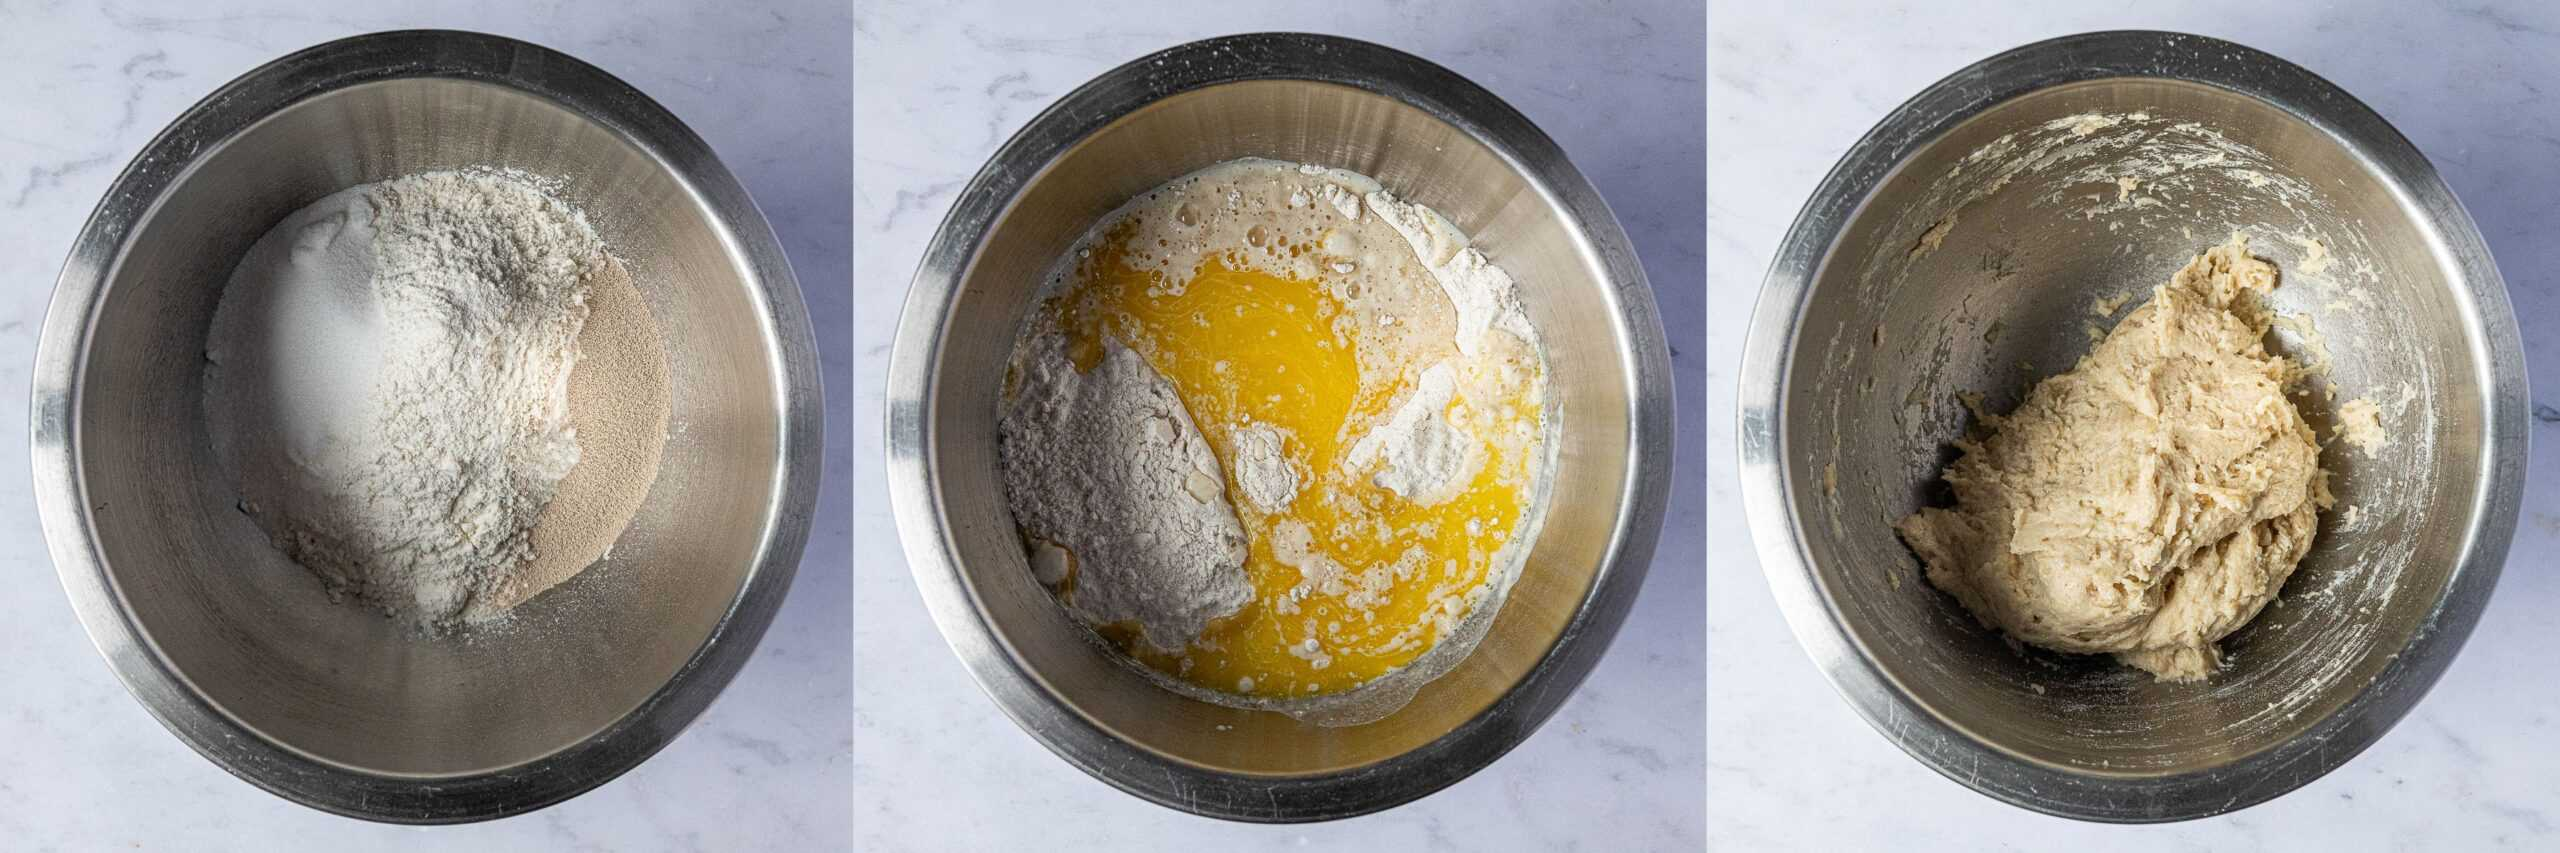 Step 1, a three image collage of making the dough.